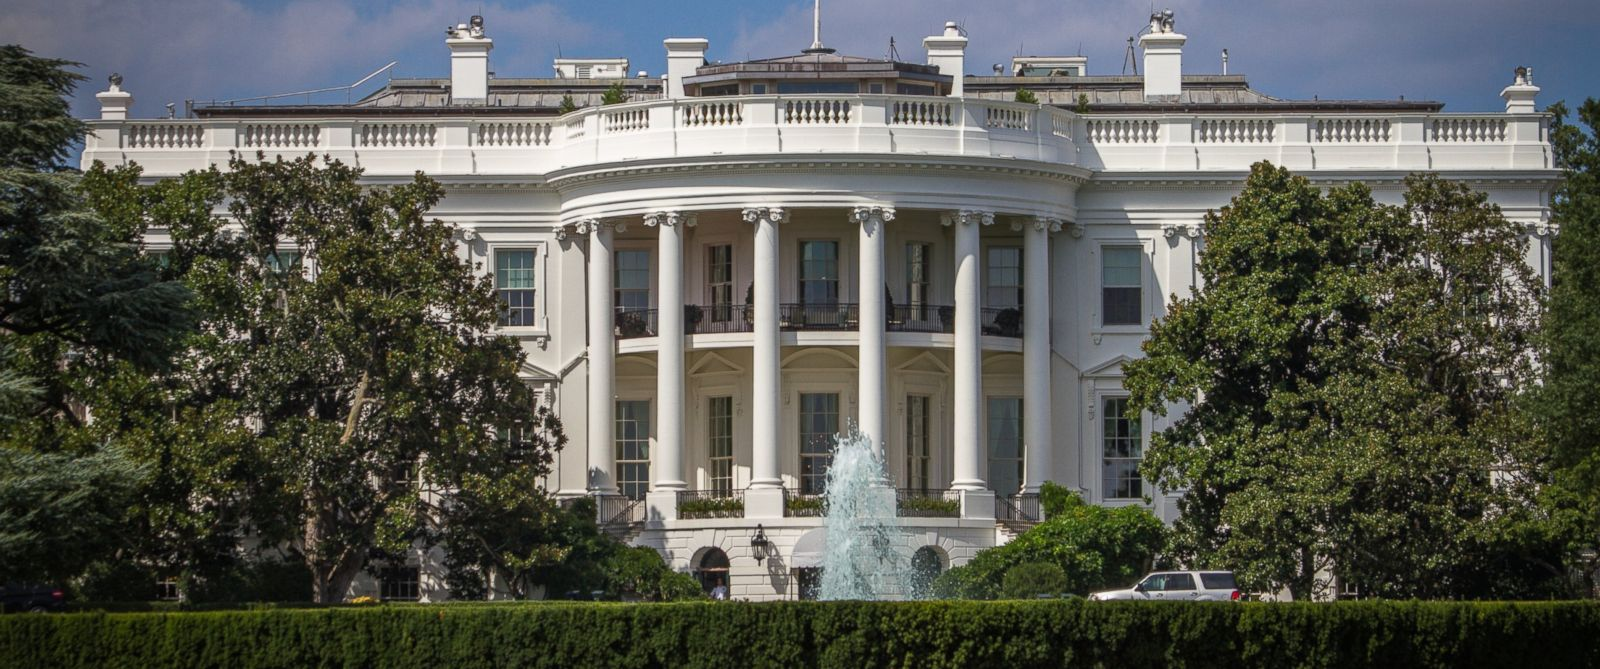 PHOTO: The White House in Washington, D.C.